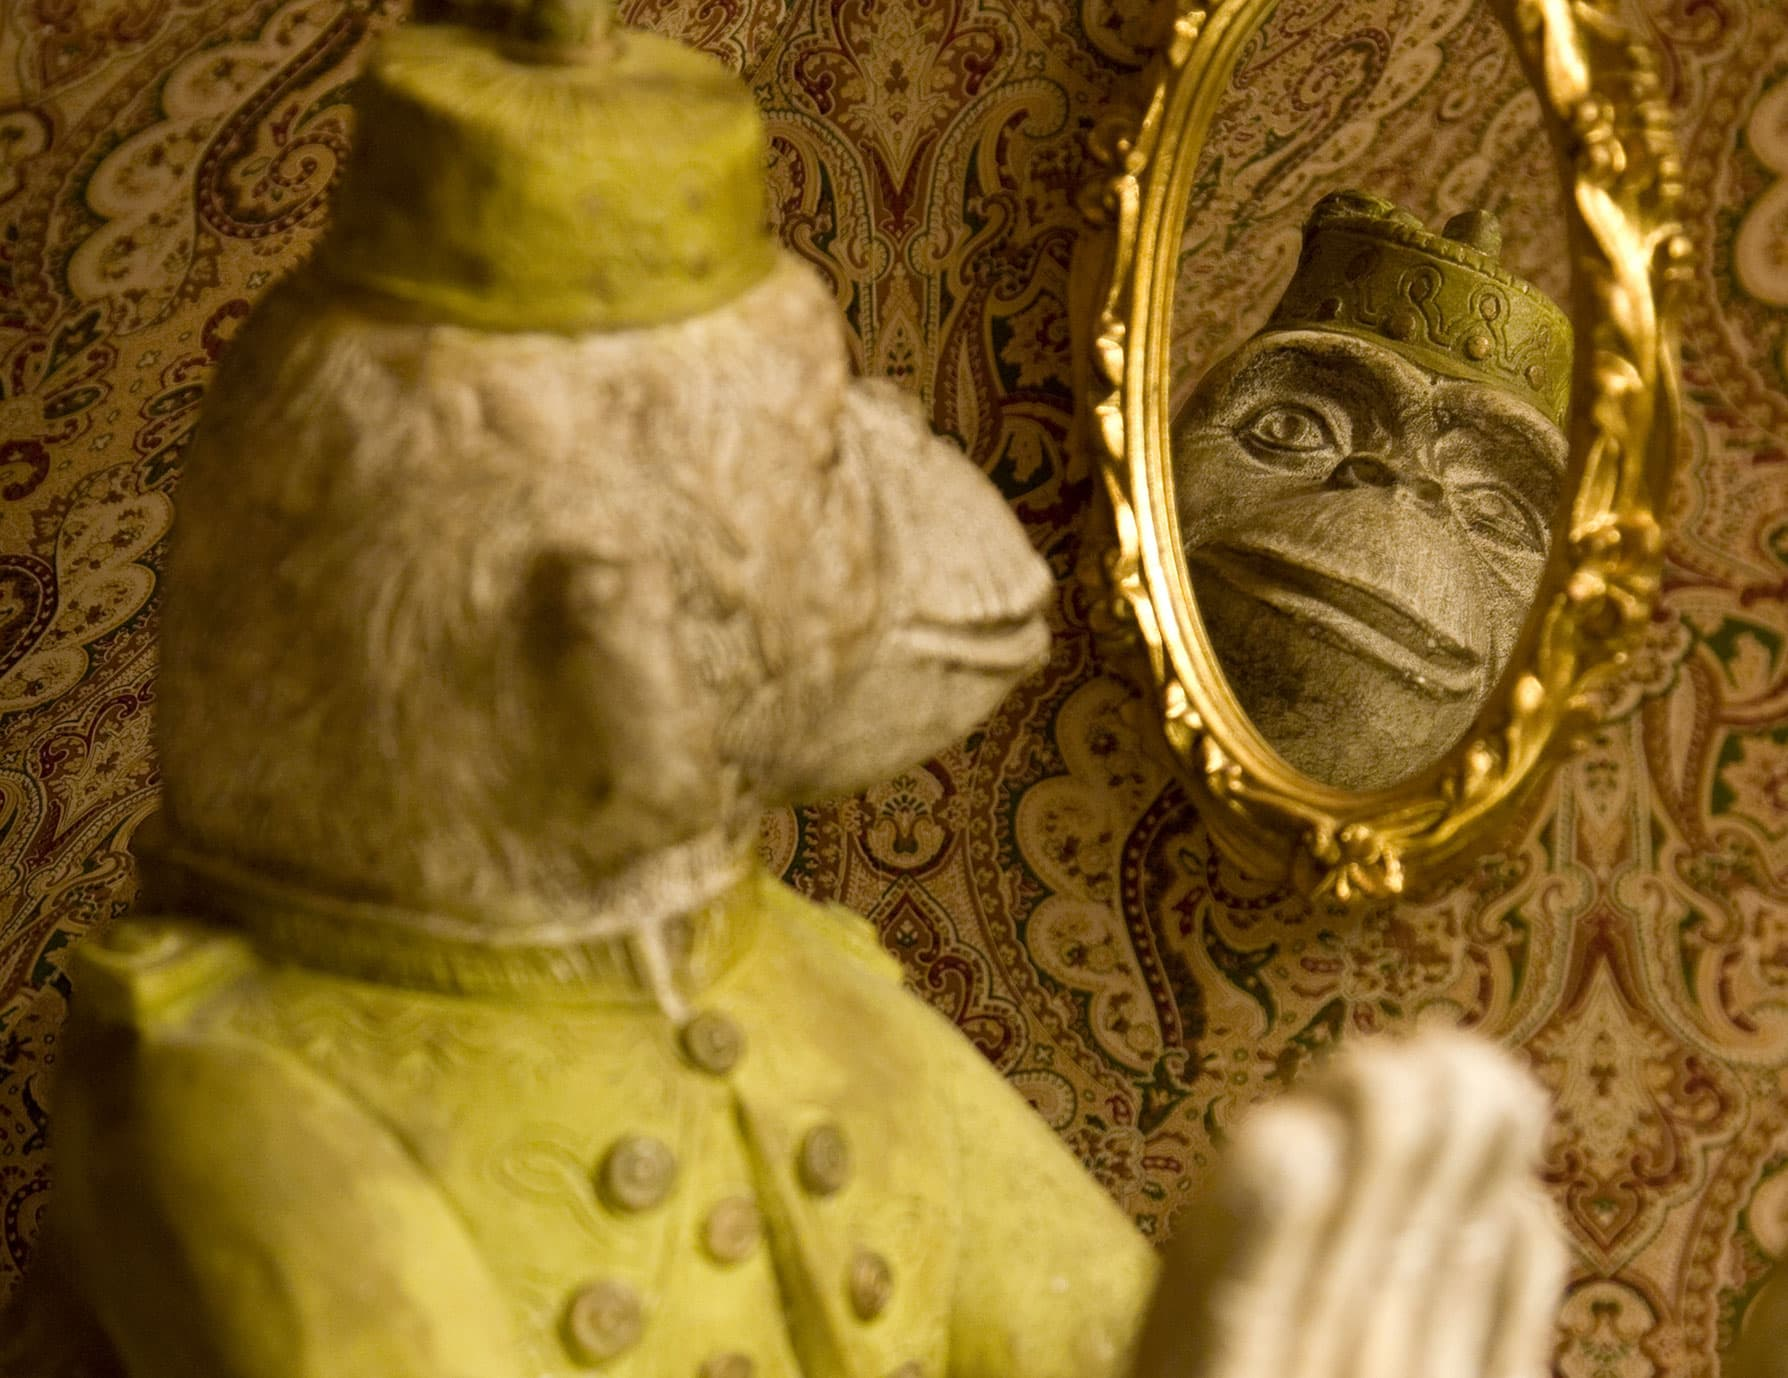 Fun monkey statuette looking in the mirror